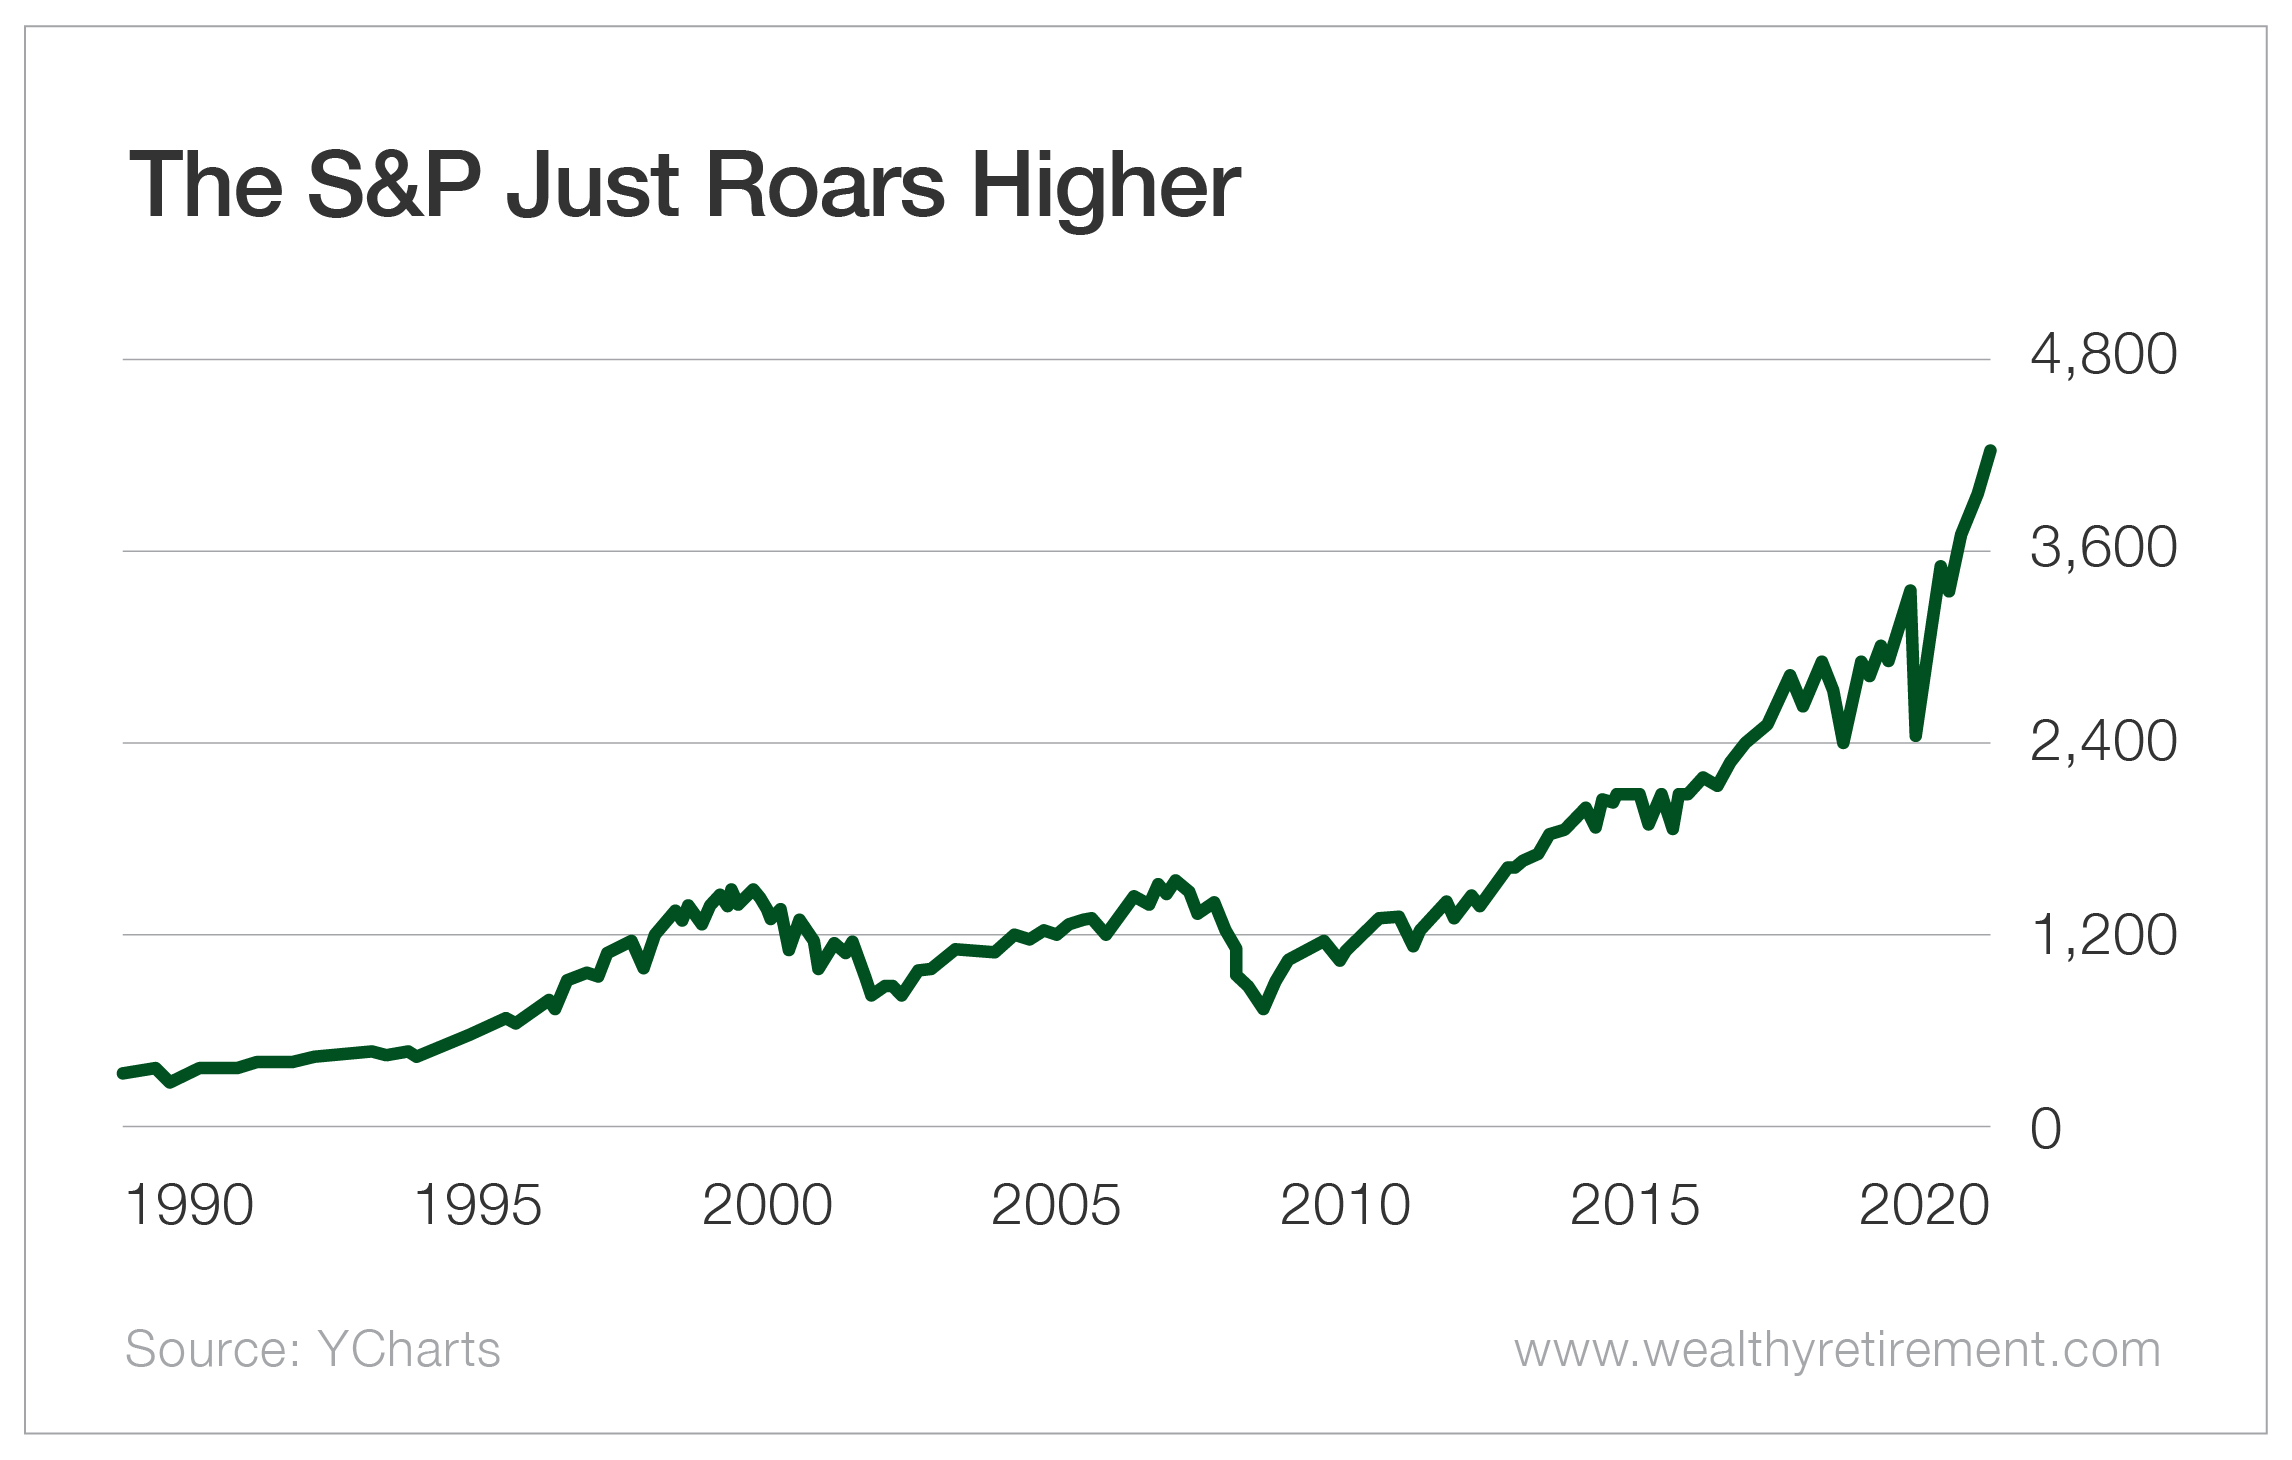 The S&P Just Roars Higher